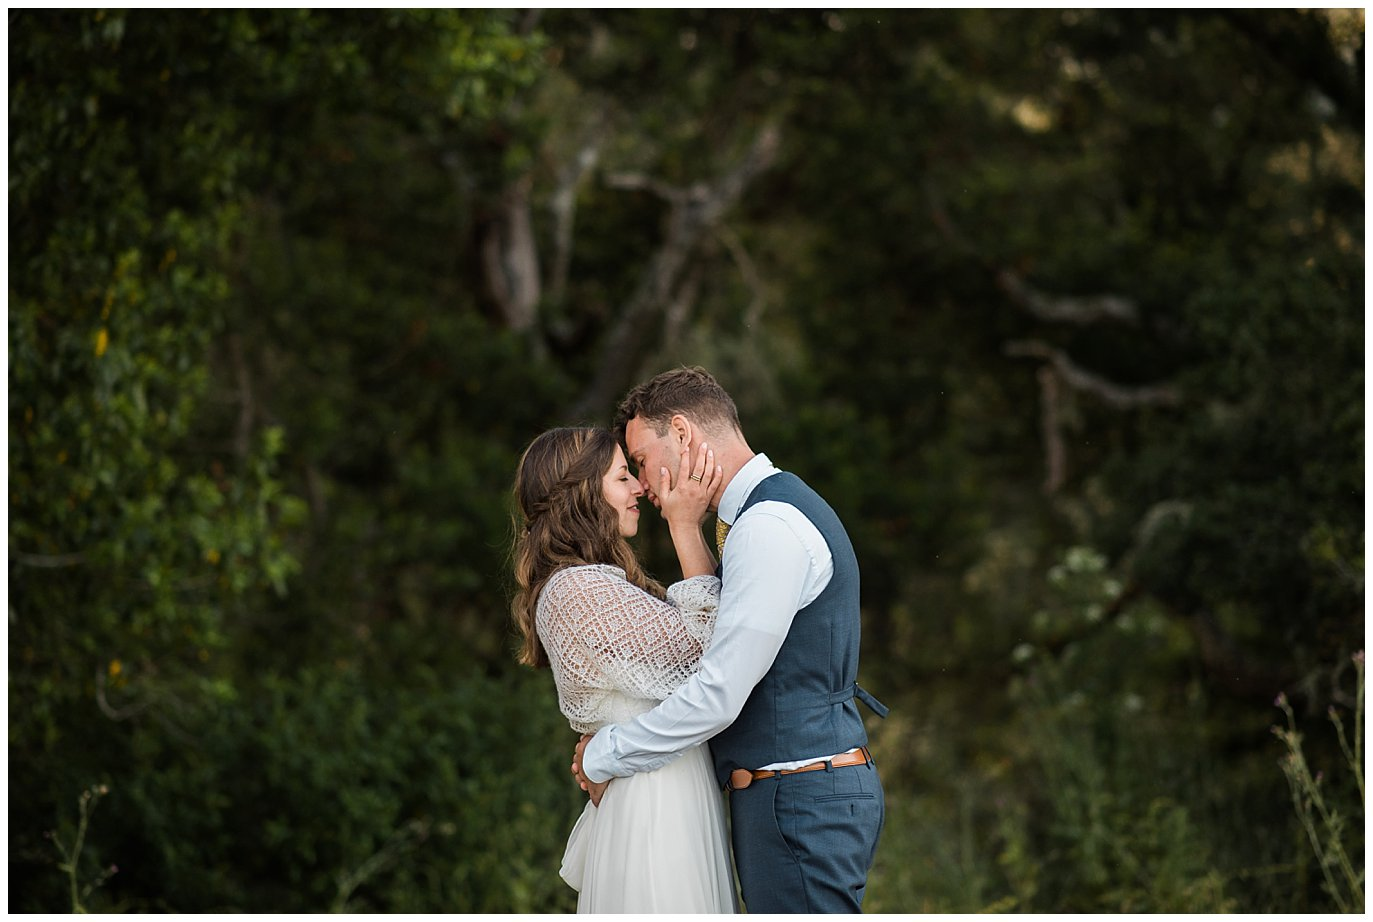 bride and groom kiss in front of gorgeous california oak trees at Mann Family Farm wedding by Bolinas wedding photographer Jennie Crate